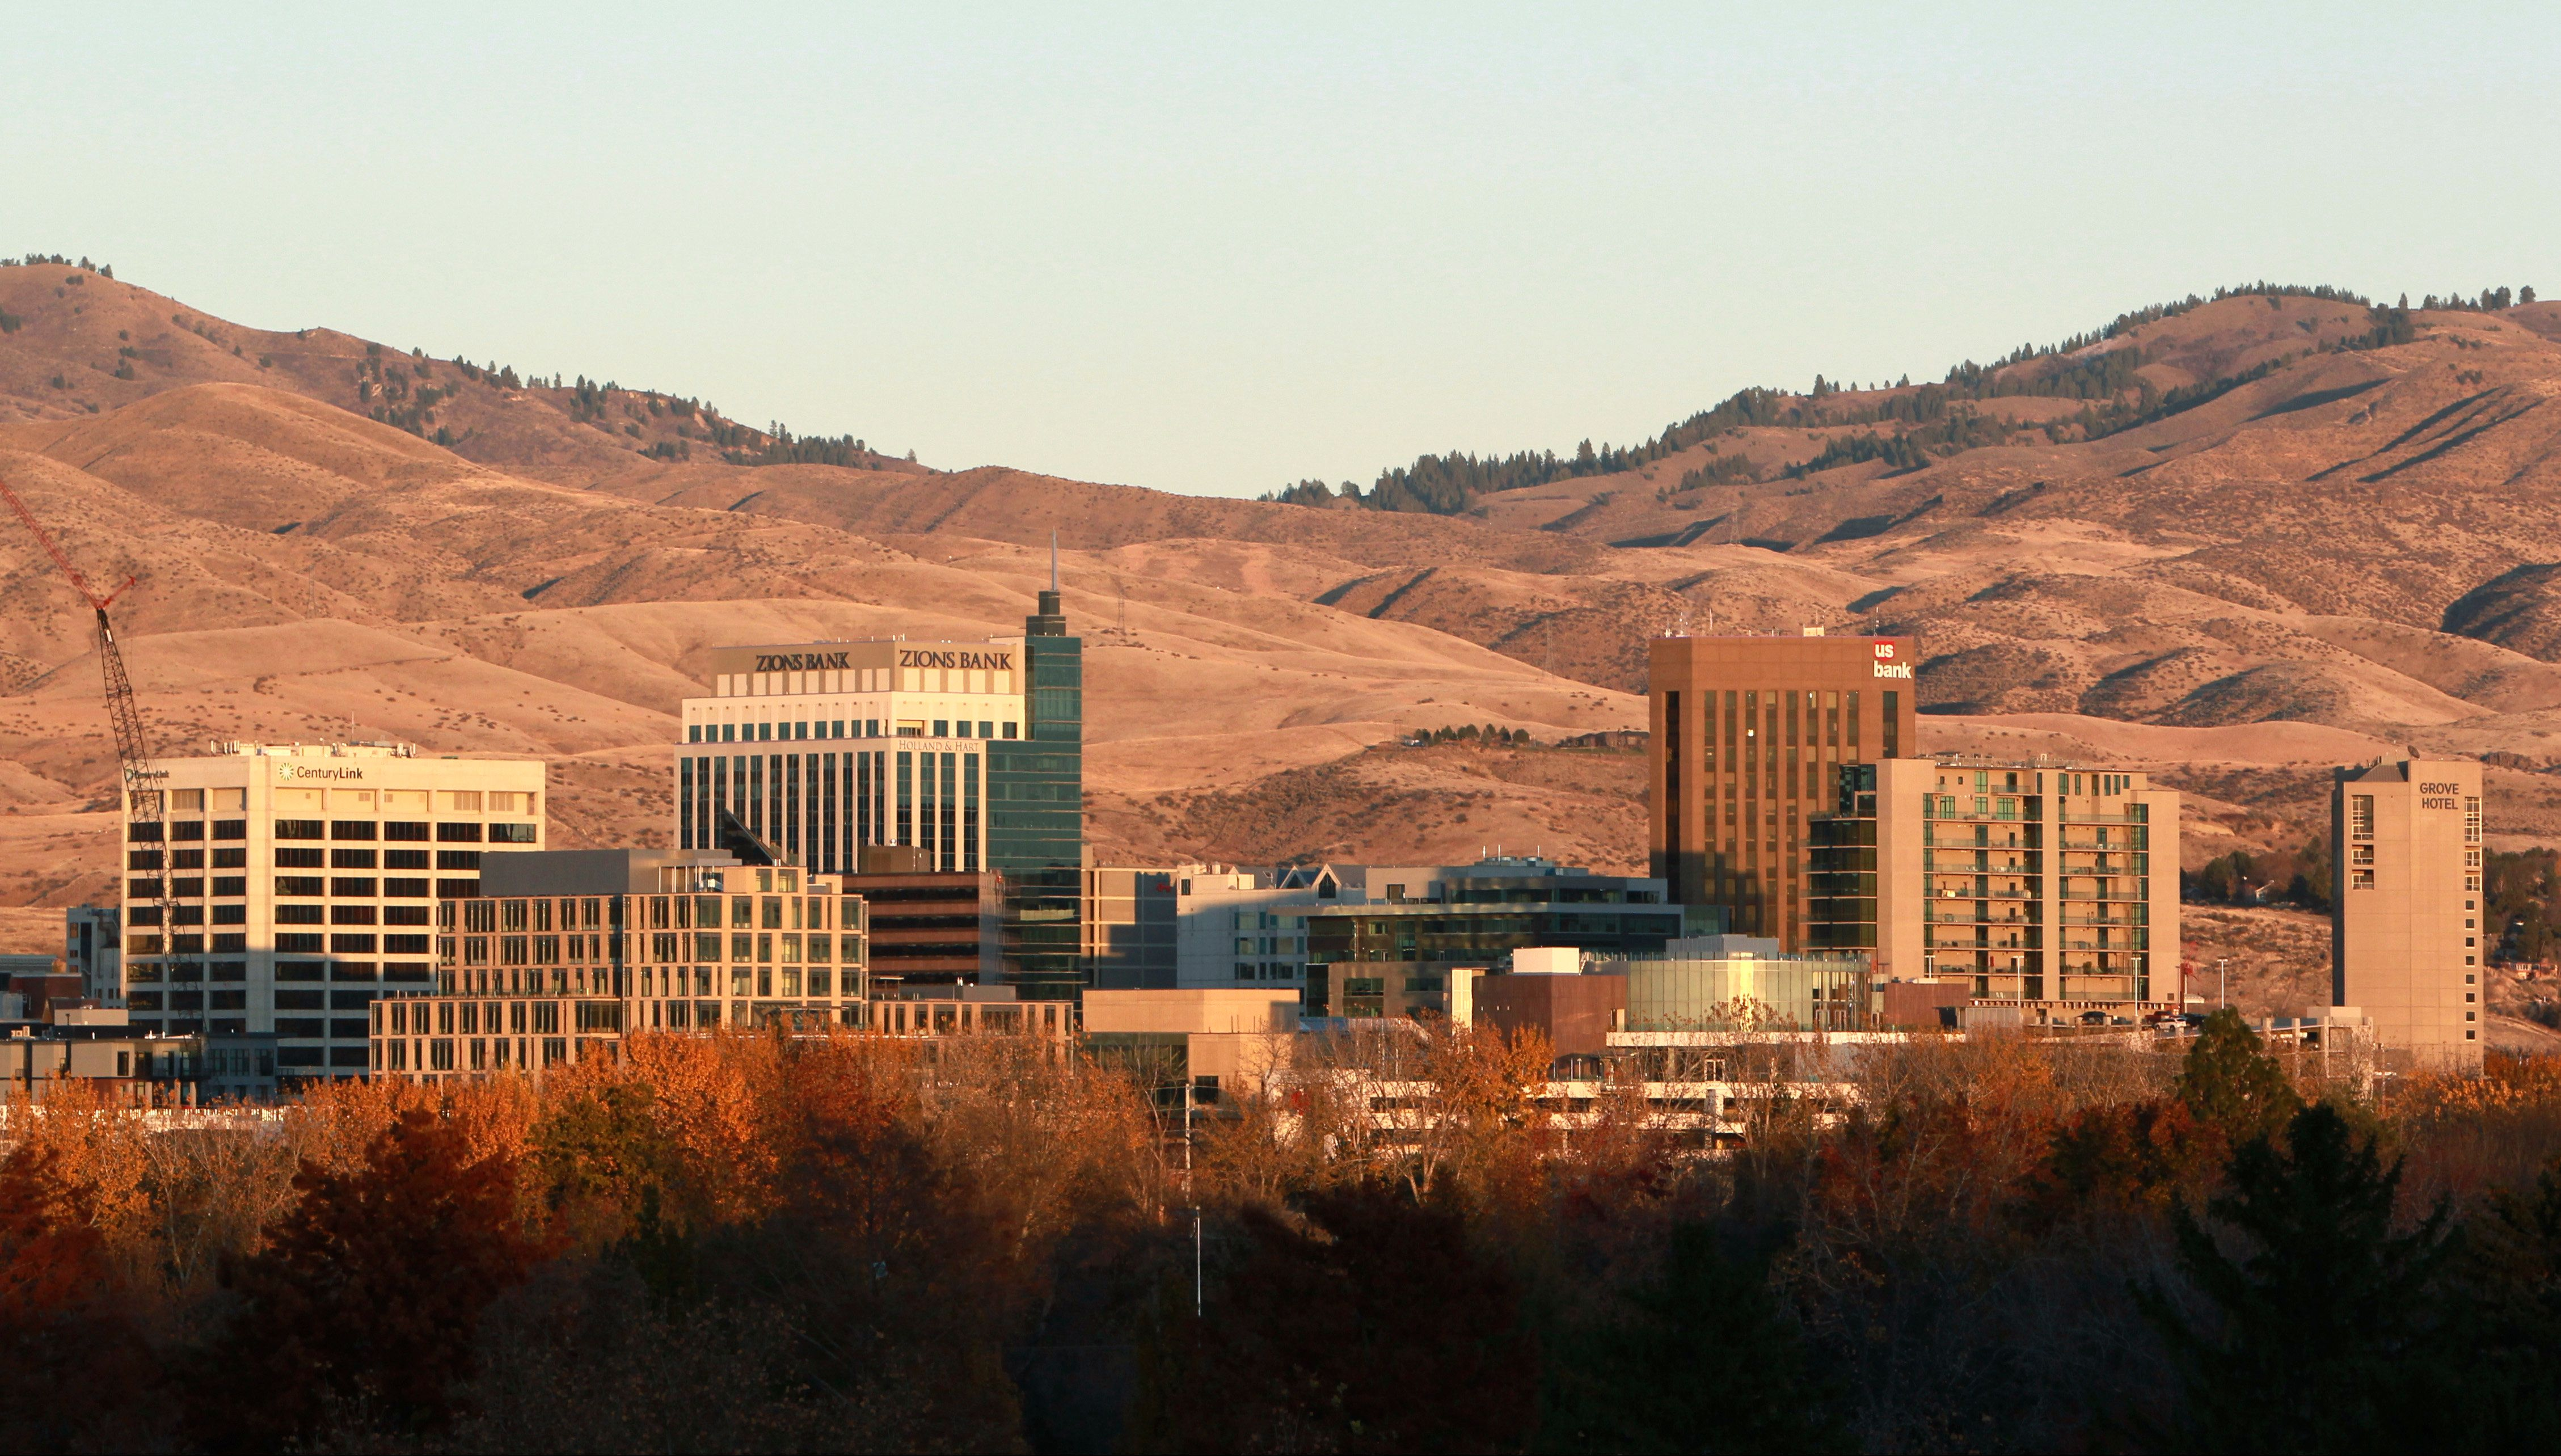 BOISE, ID - NOVEMBER 14, 2017: The downtown Boise skyline. (Photo by Joe Jaszewski for The Washington Post via Getty Images)